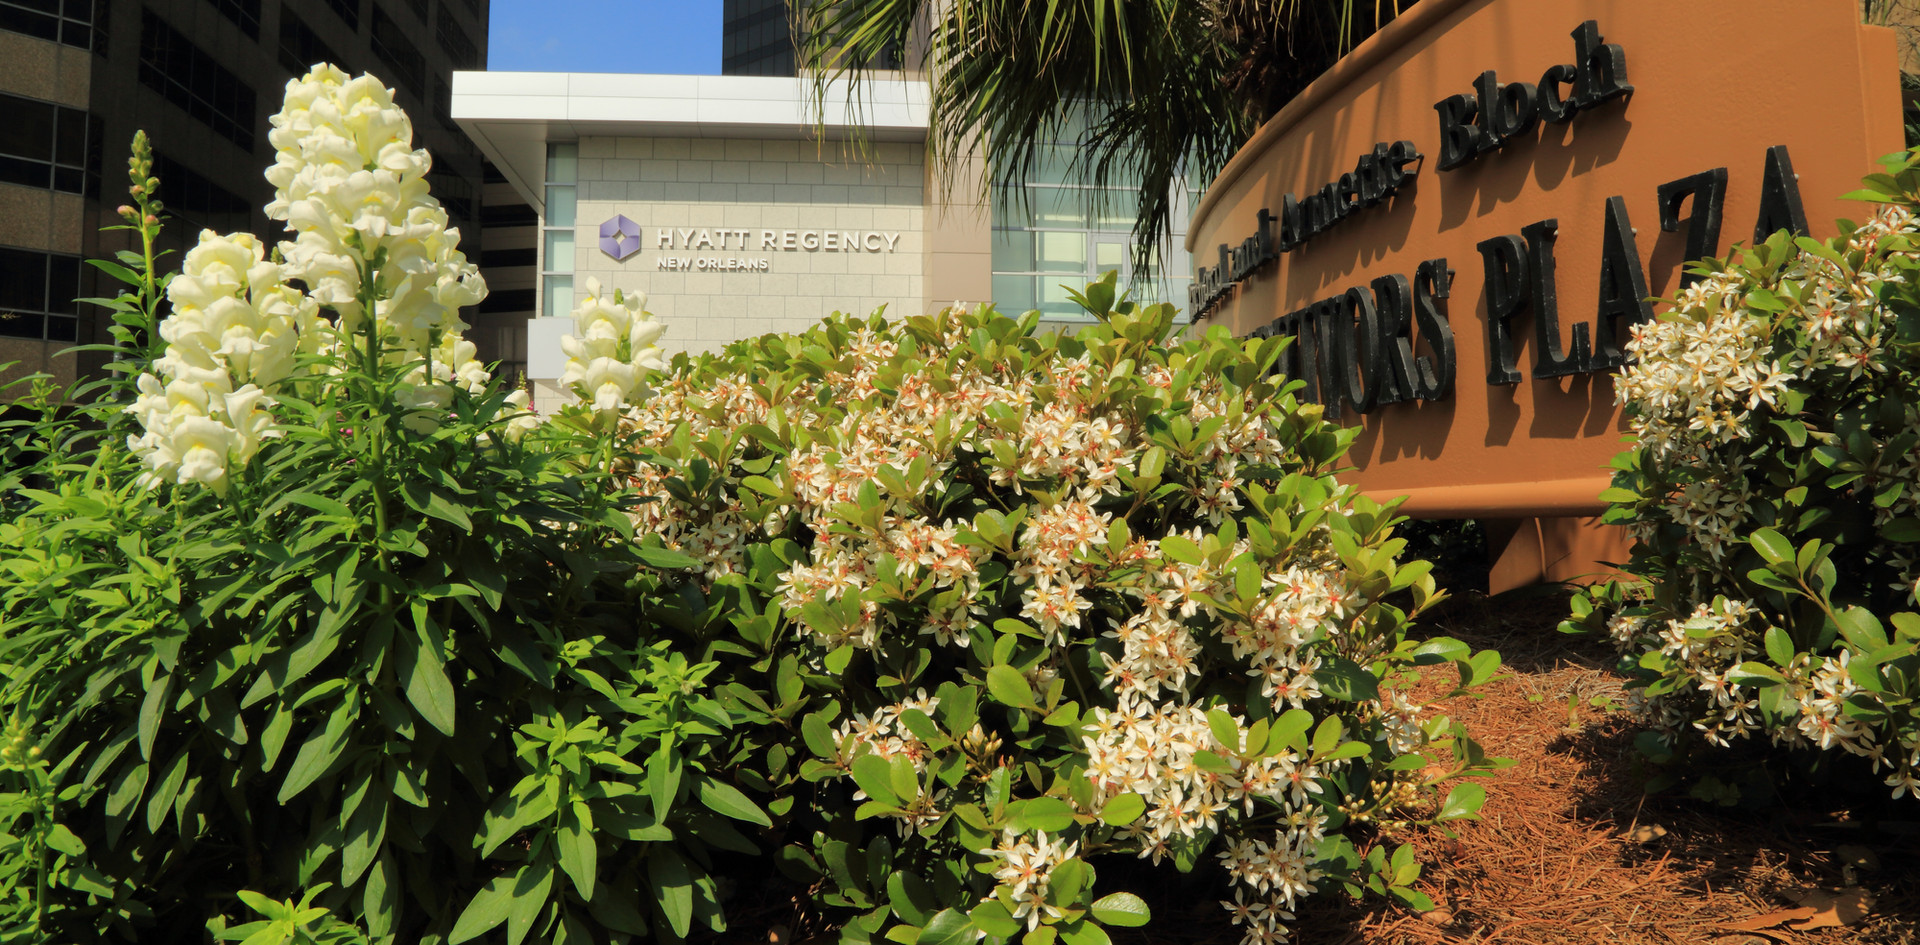 Commercial Landscaping with Seasonal Color